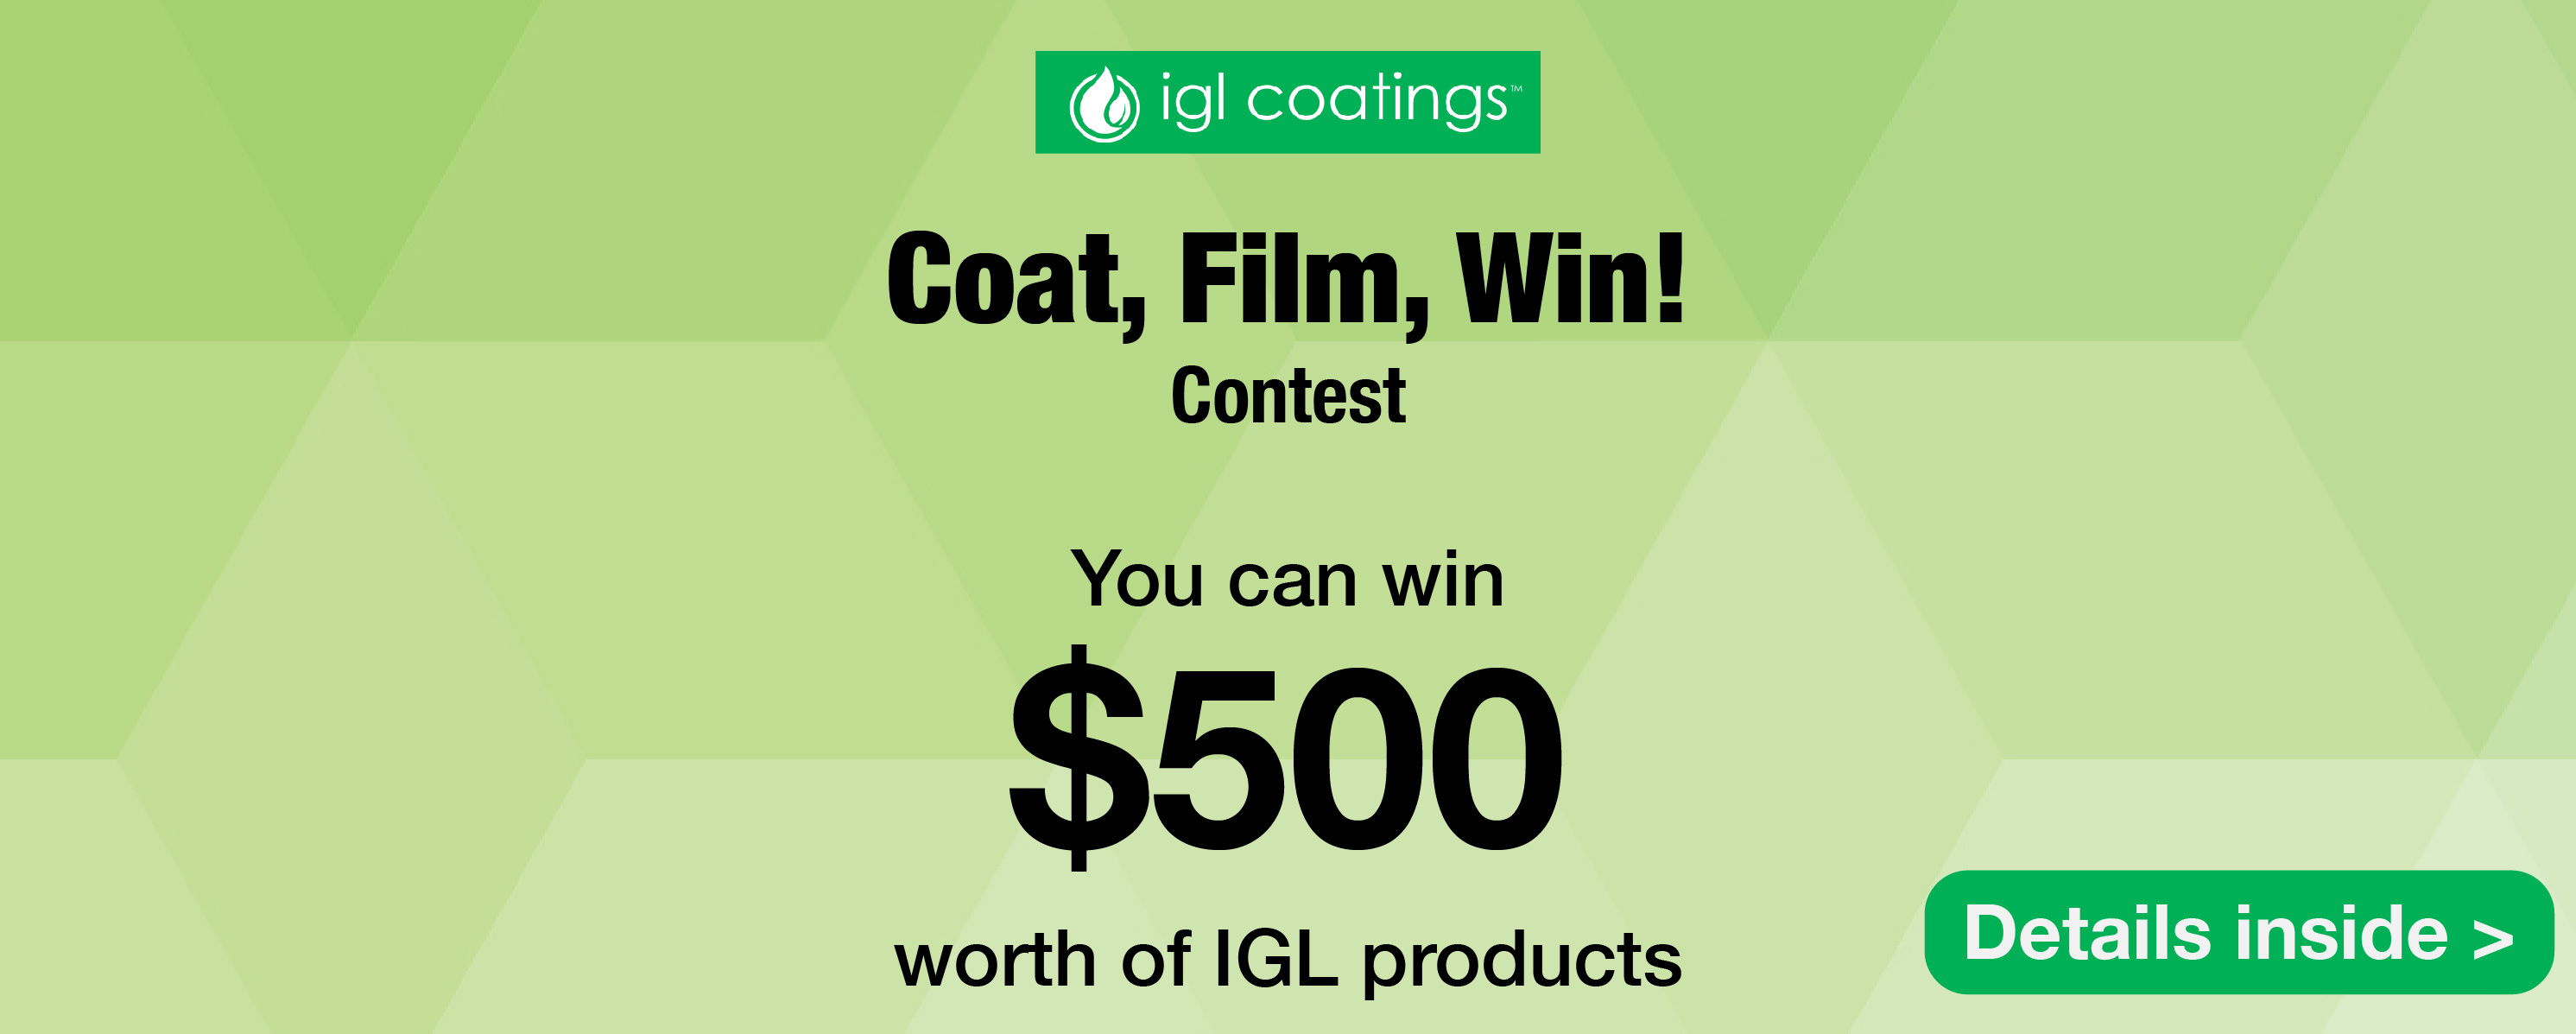 coat film win blog 300ppi